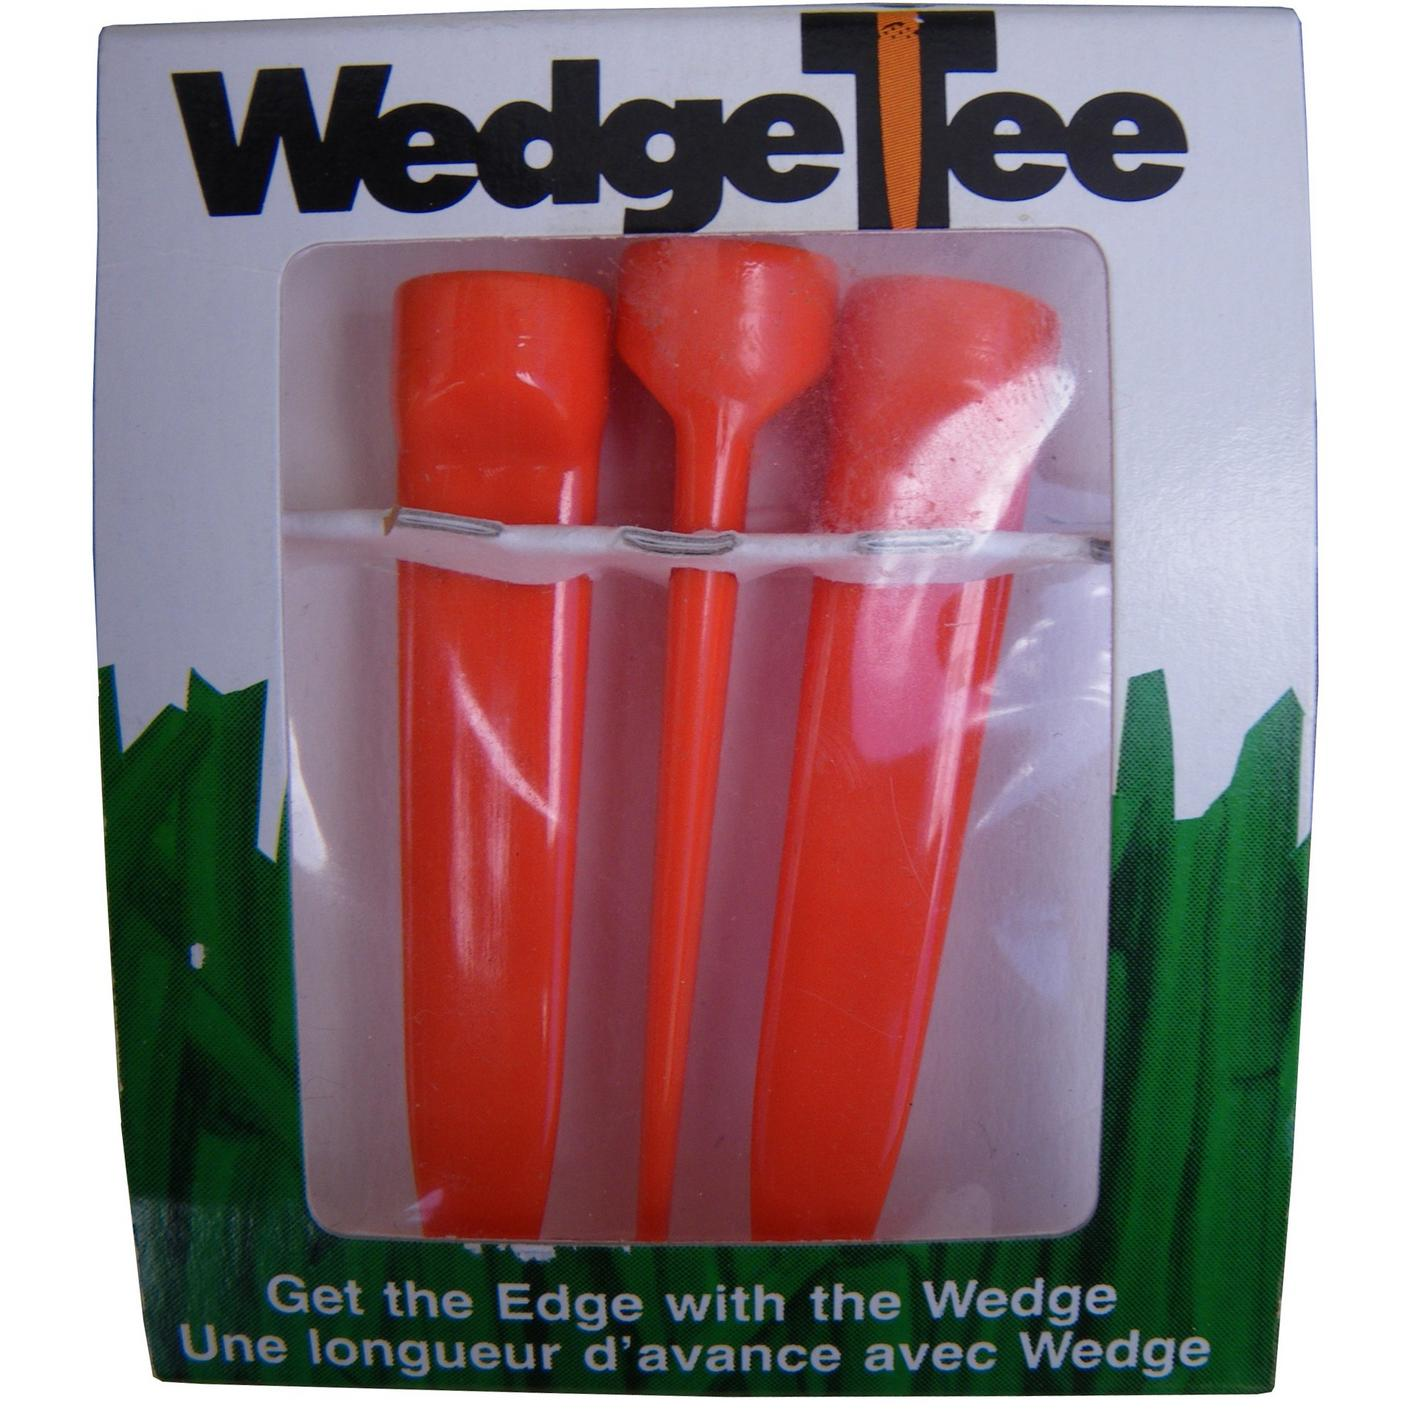 Wedge Tees hi-res